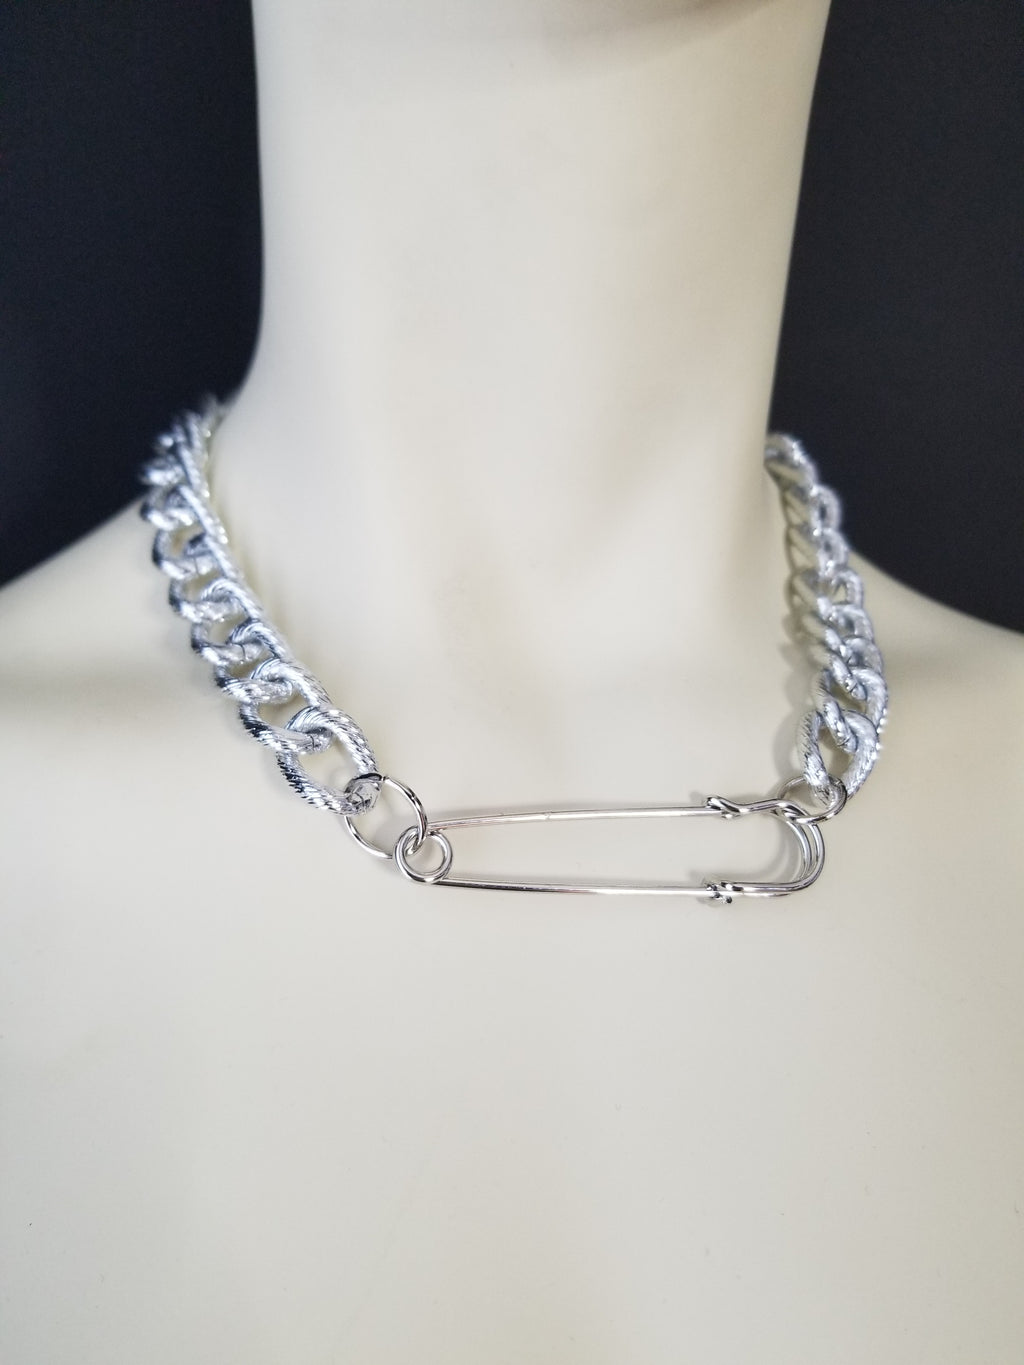 SAFETY-PIN NECKLACE